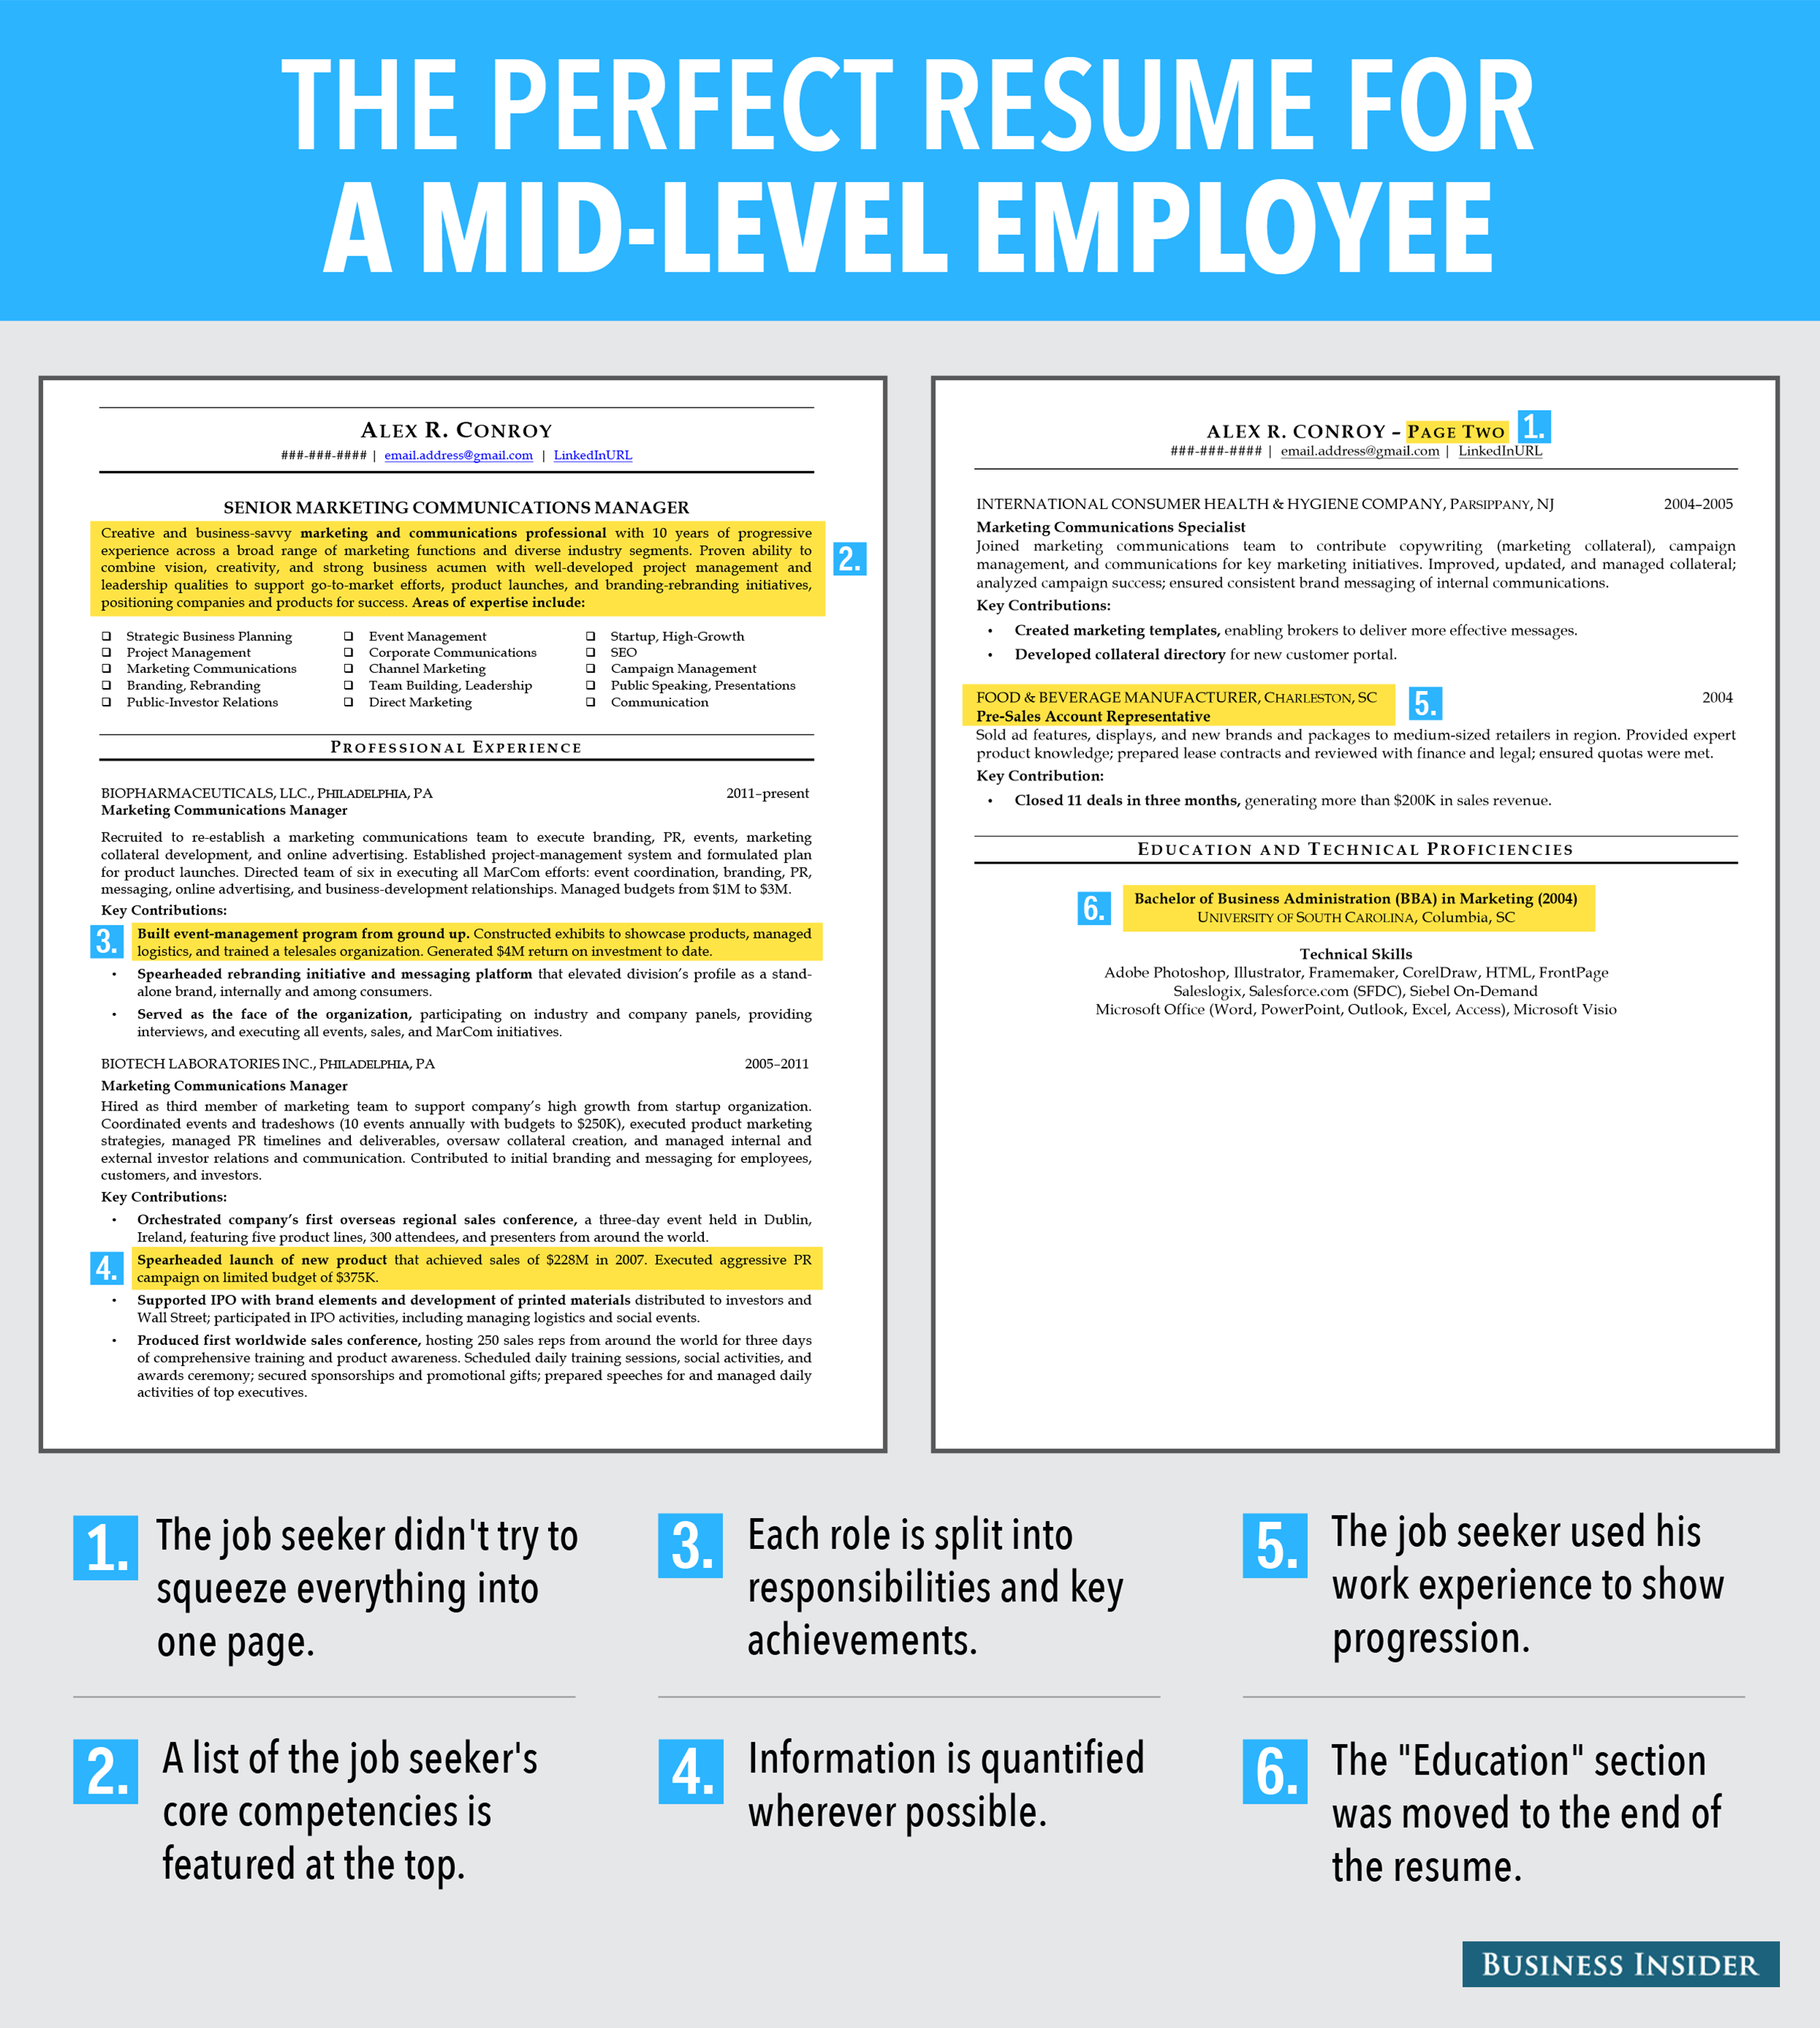 Attractive 6 Things You Should Always Include On Your Résumé